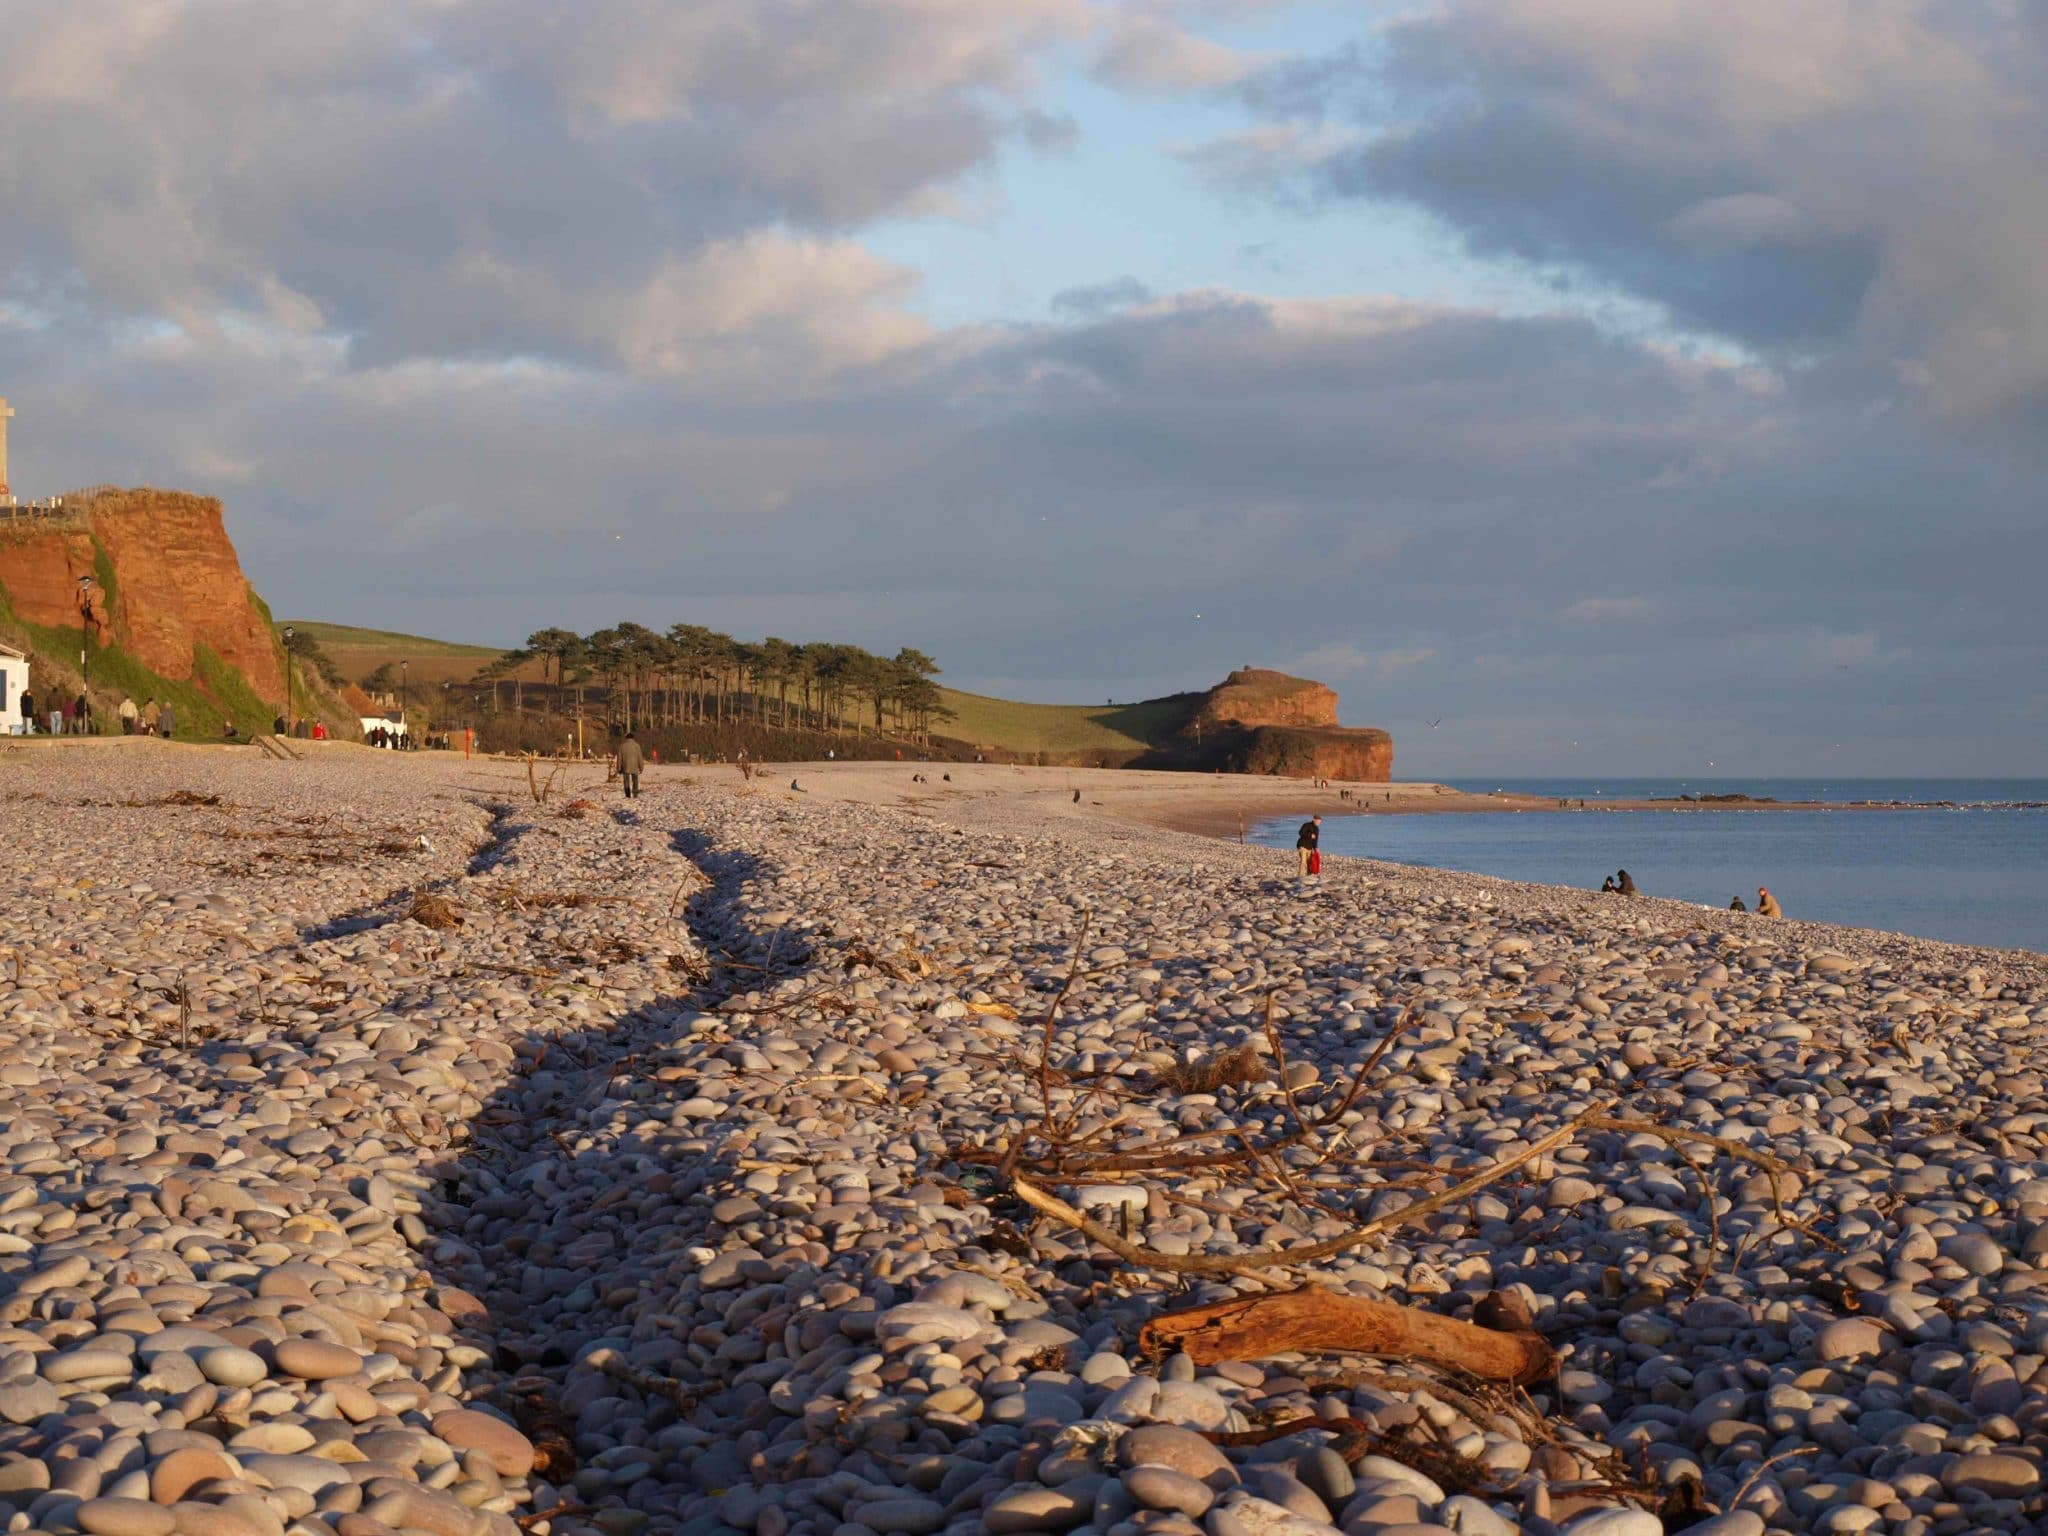 Photo of the view along the beach at Budleigh Salterton